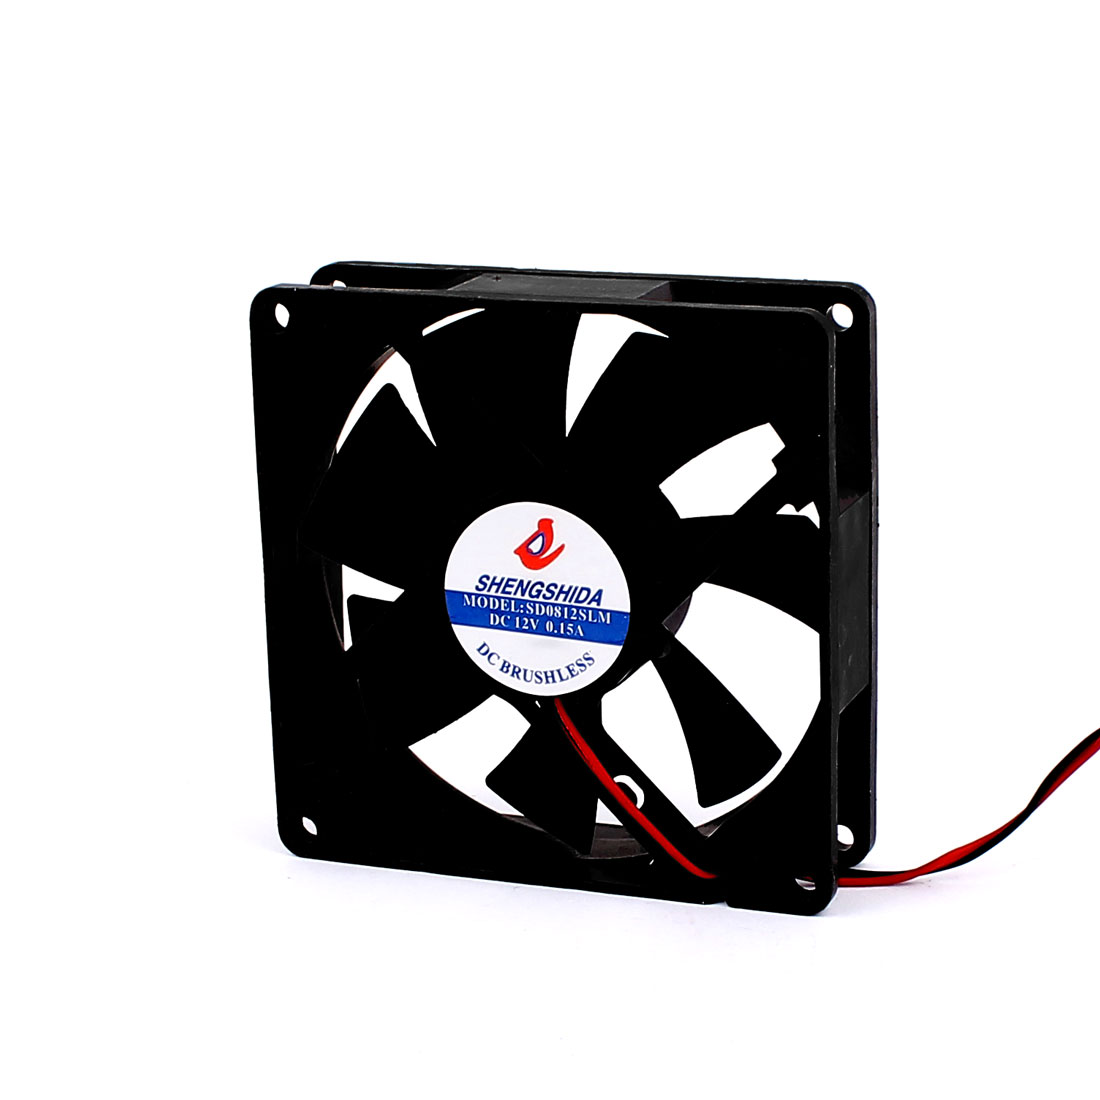 DC 12V 0.15A 4Pin Connector PC Computer Case CPU Cooler Cooling Fan 92mm x 25mm